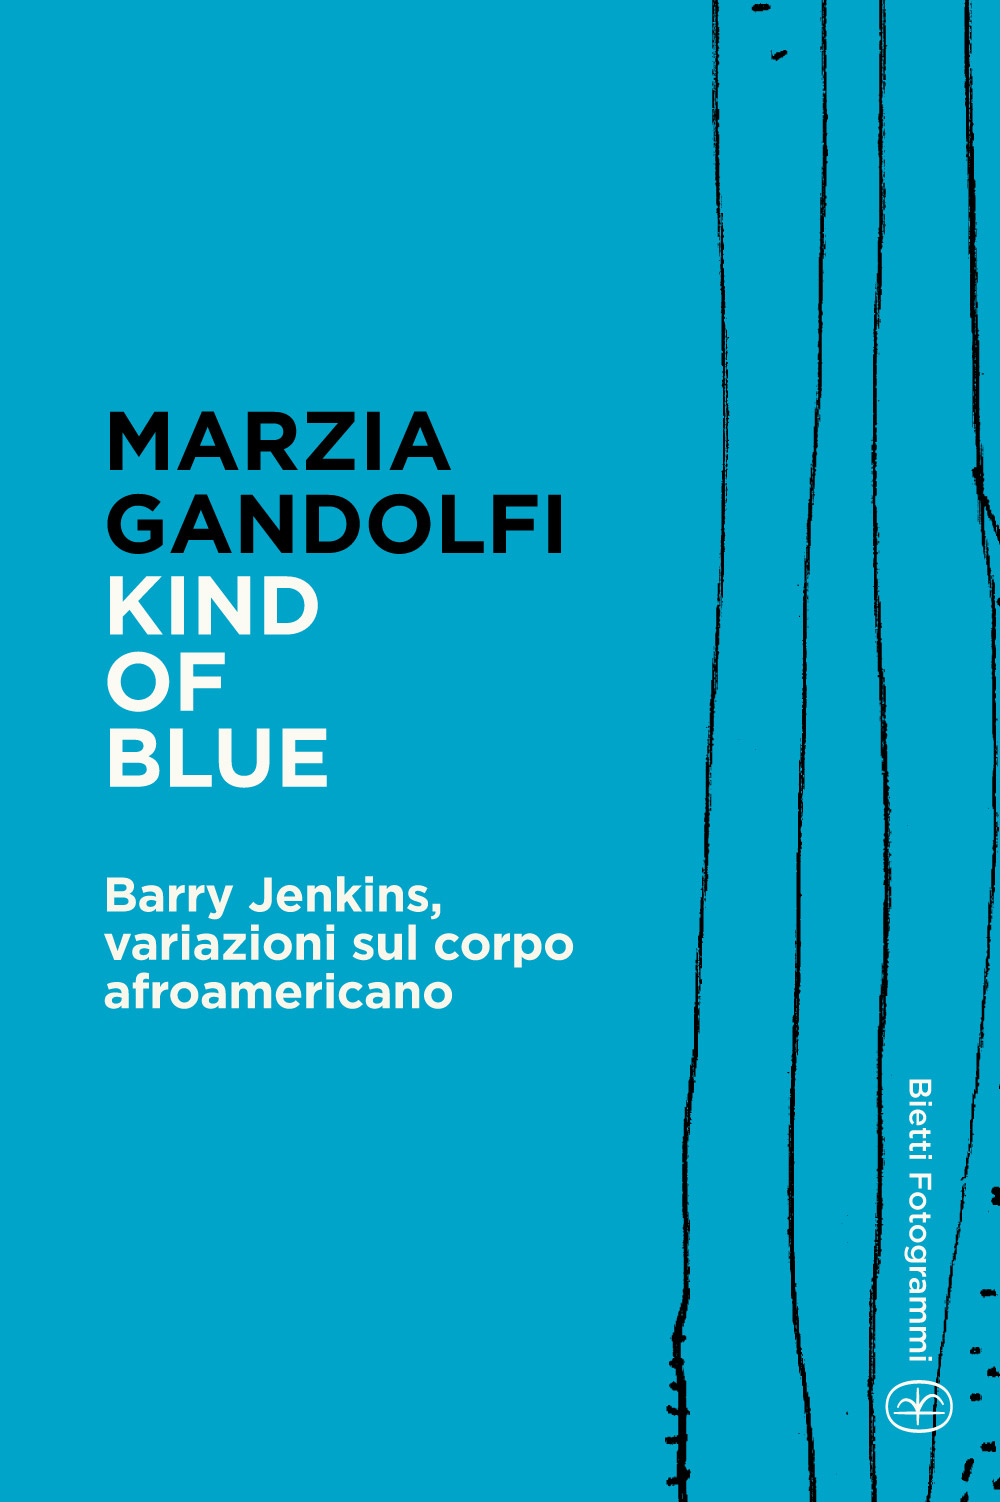 Kind of Blue. Barry Jenkins, variazioni sul corpo afroamericano